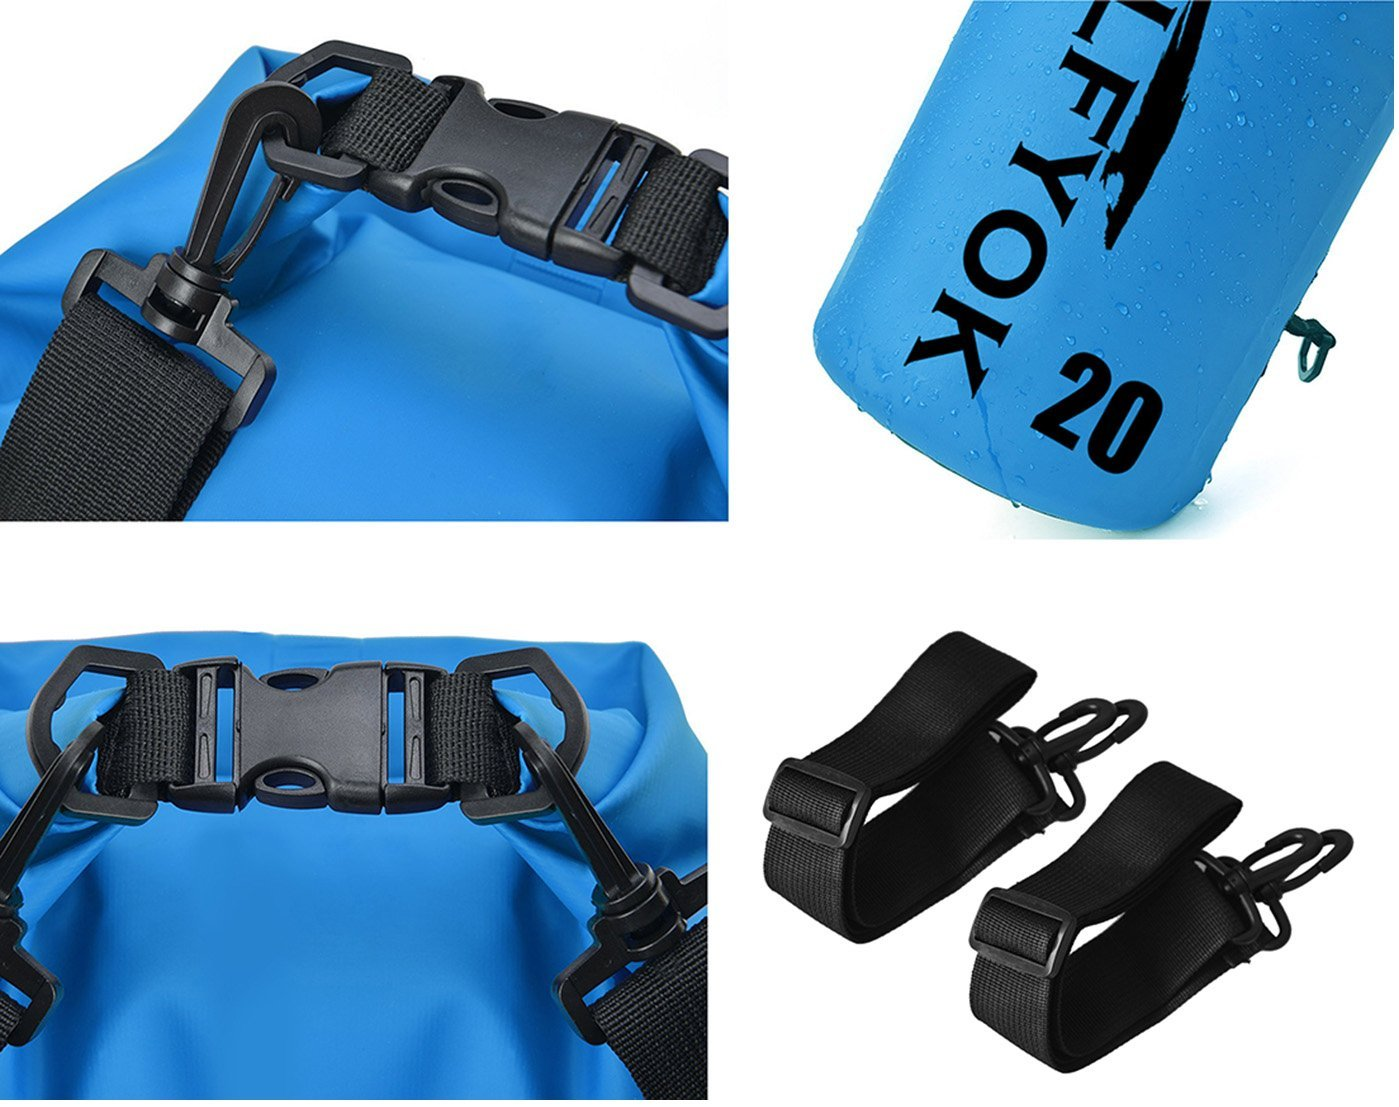 Hiking Rafting Fishing Camping 10L with Shoulder Straps Heavy-Duty PVC Floating Roll Top Dry Sack for Kayaking Boating Wolfyok Waterproof Dry Bag Set 20L Swimming